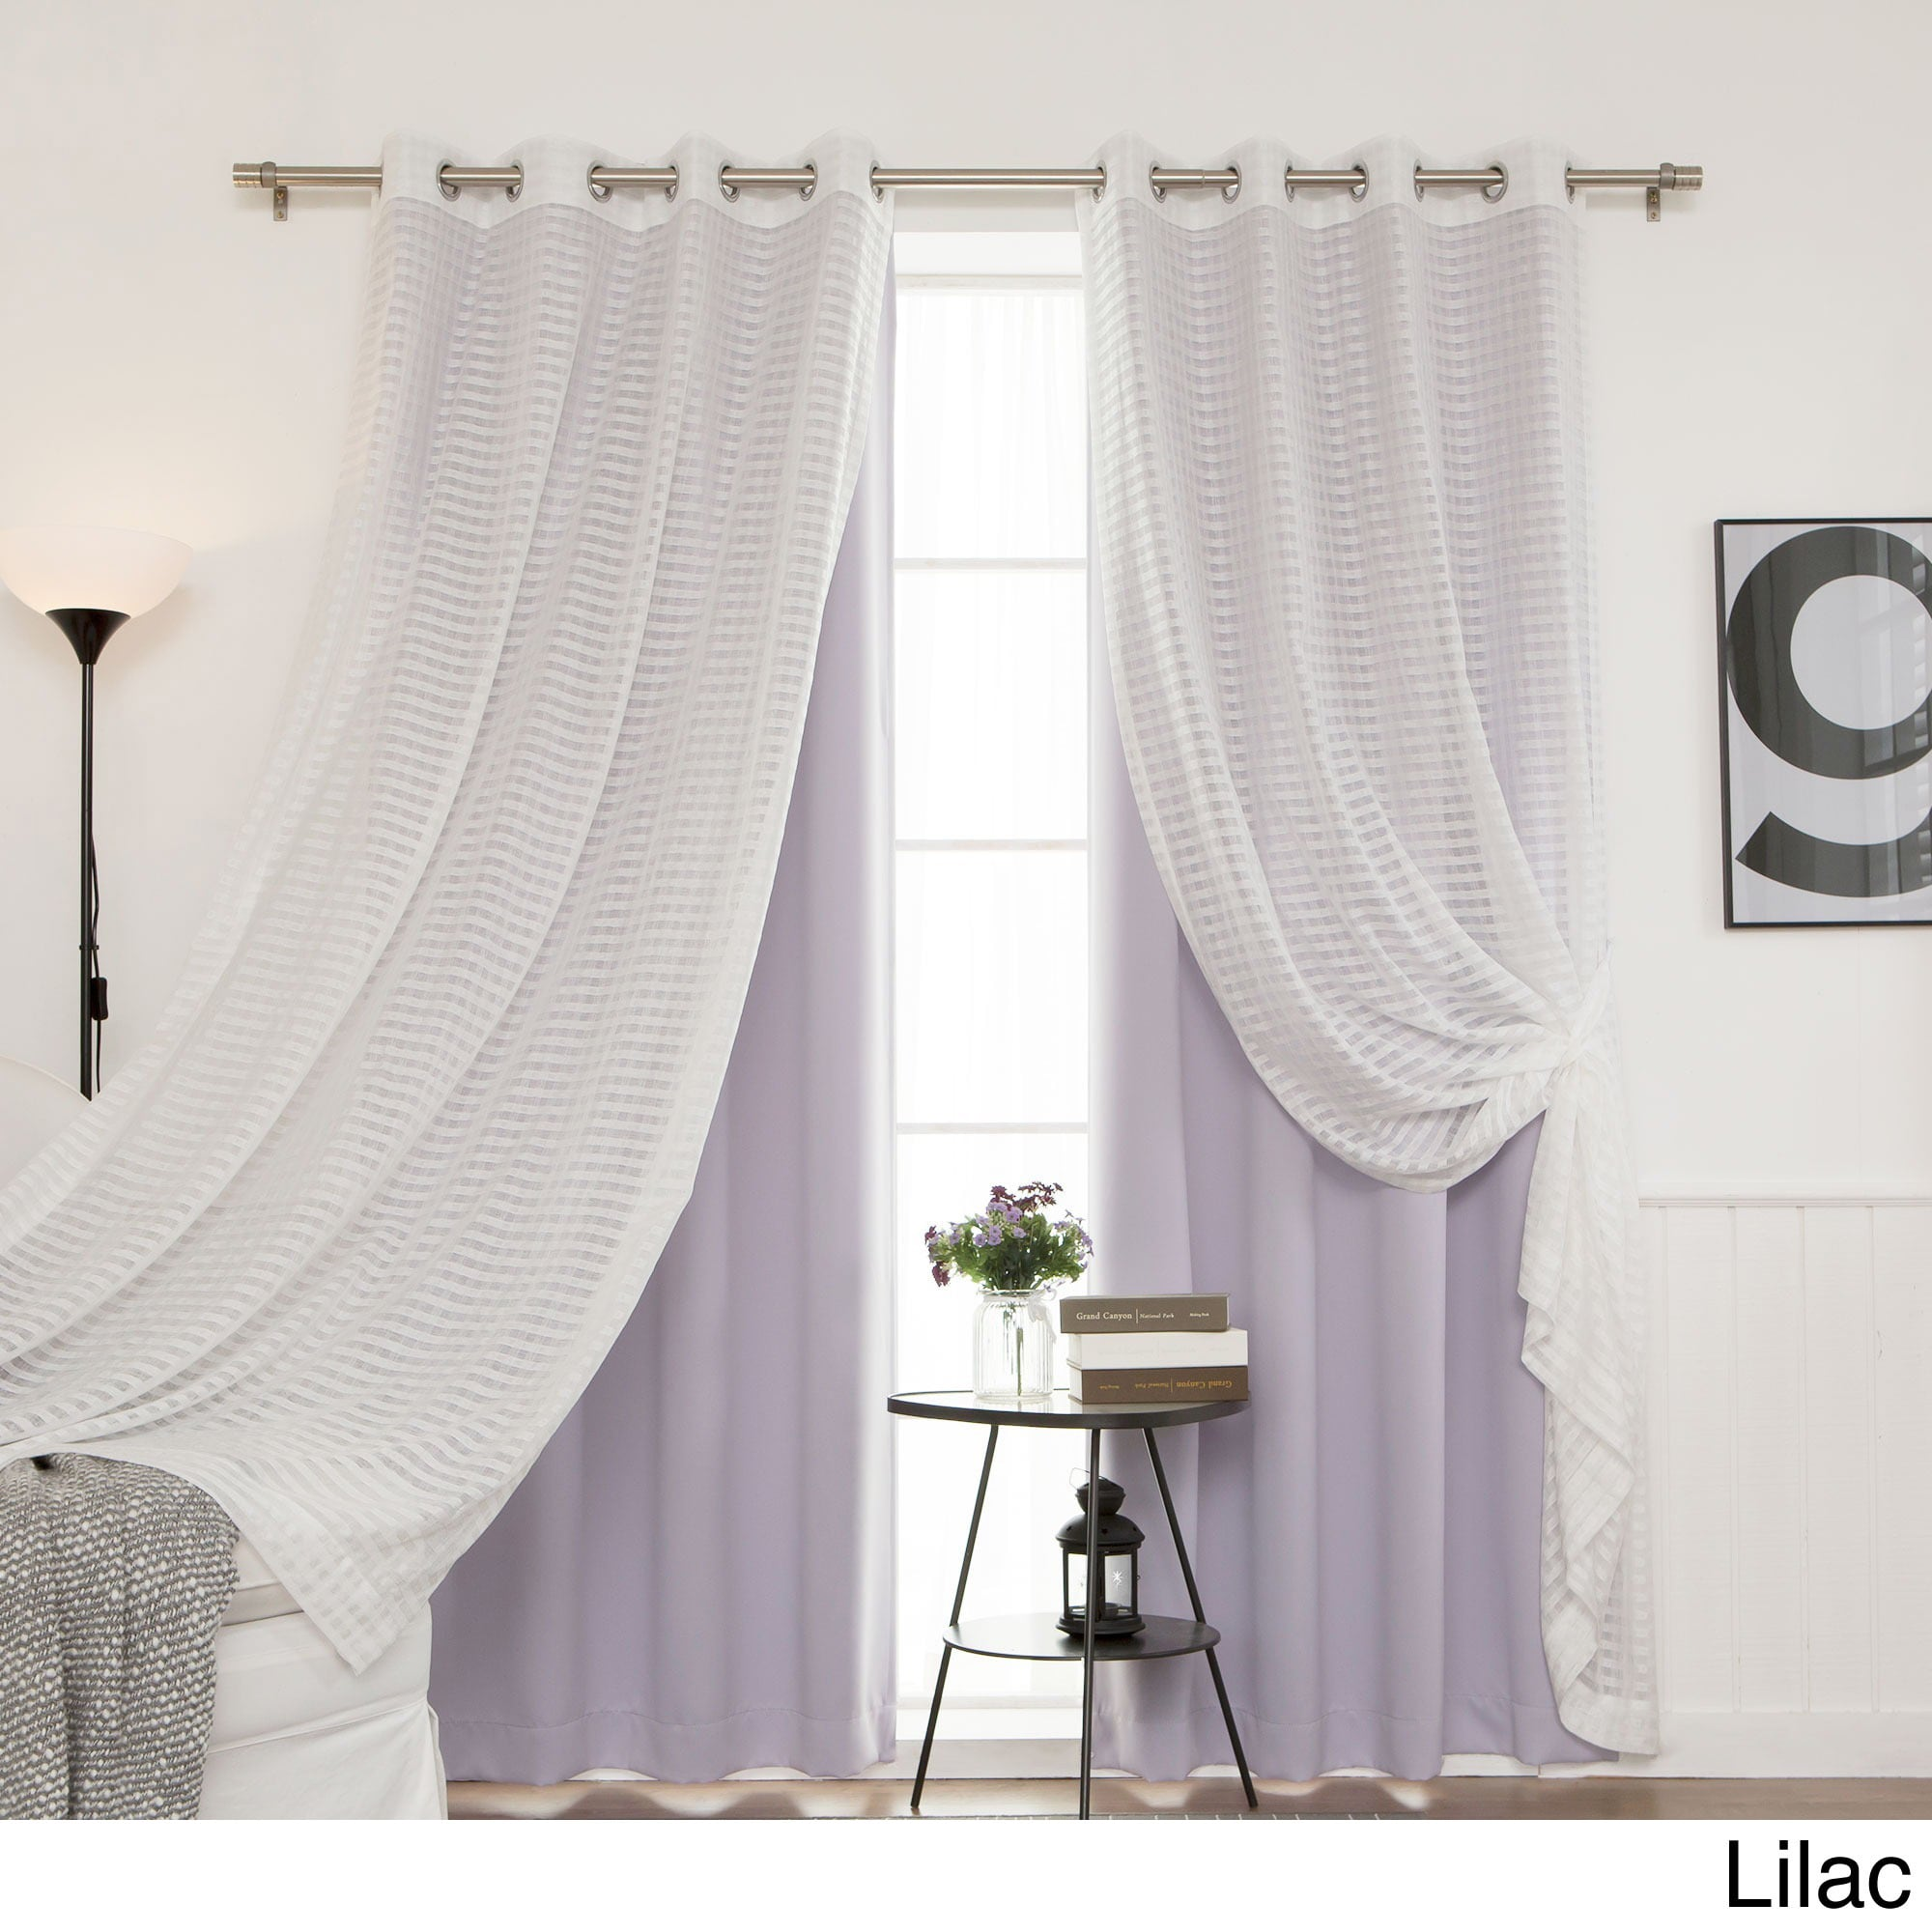 picture inspirations marble trendy curtain size pink texture or violet ultra in pattern free photos drapes jojo light photograph curtains and full walmart pantone of girls purple color stirring curtainsgirls owl photo